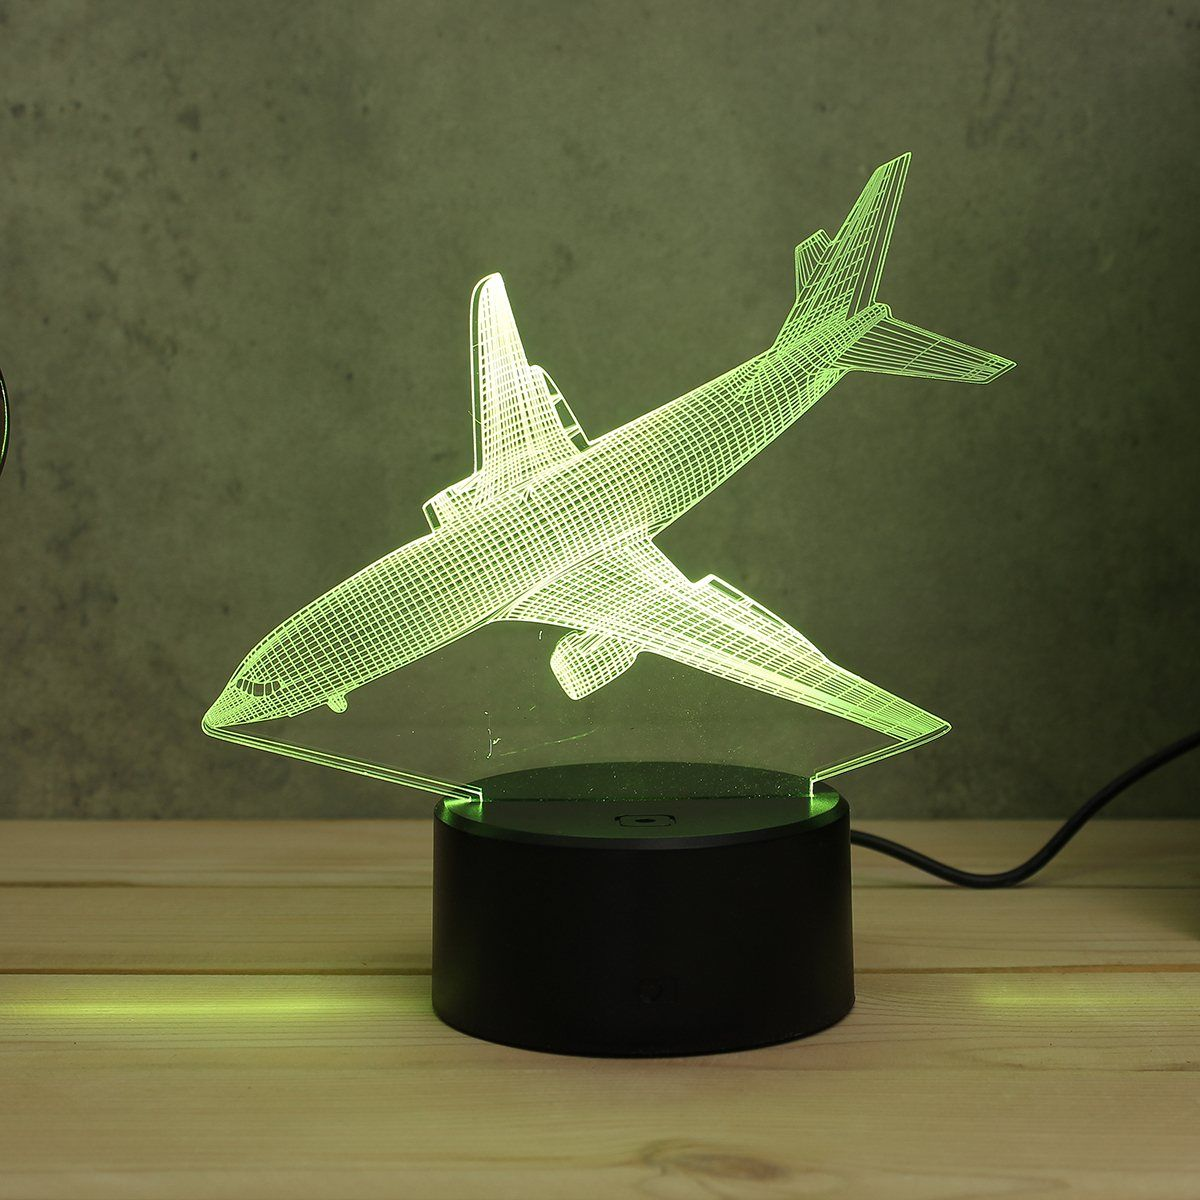 Aircraft Airplane Acrylic LED 3D LED Night Light Toys Lamp Air Plane Night Touch Table 7 Color Desk Light DC5V For Kid Christmas